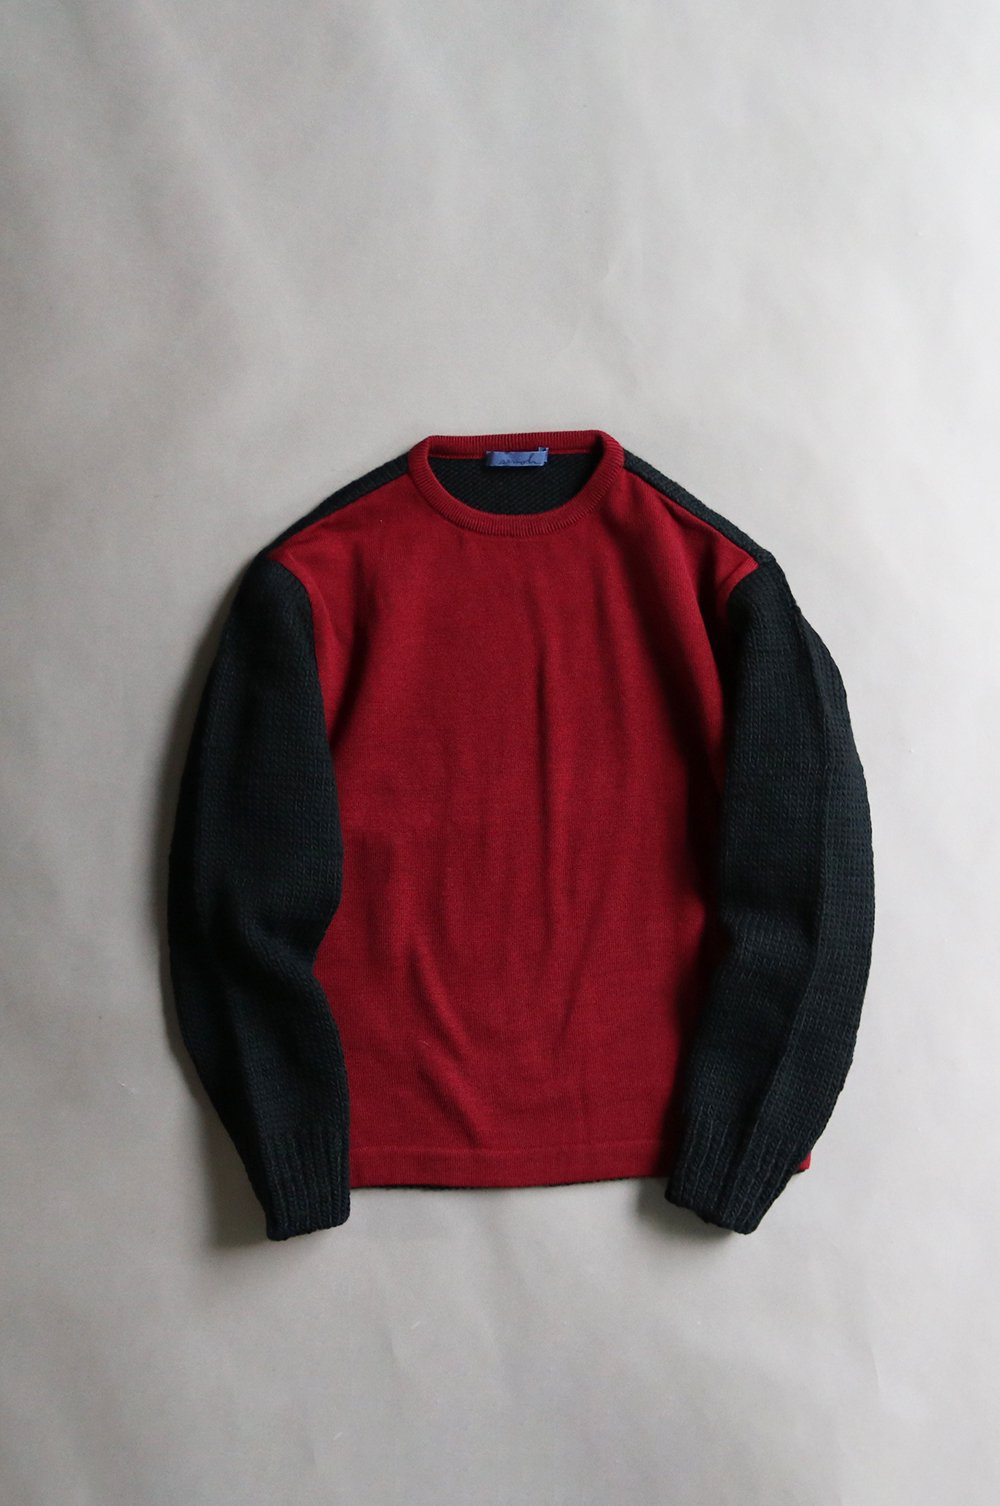 Switching wool knit pullover